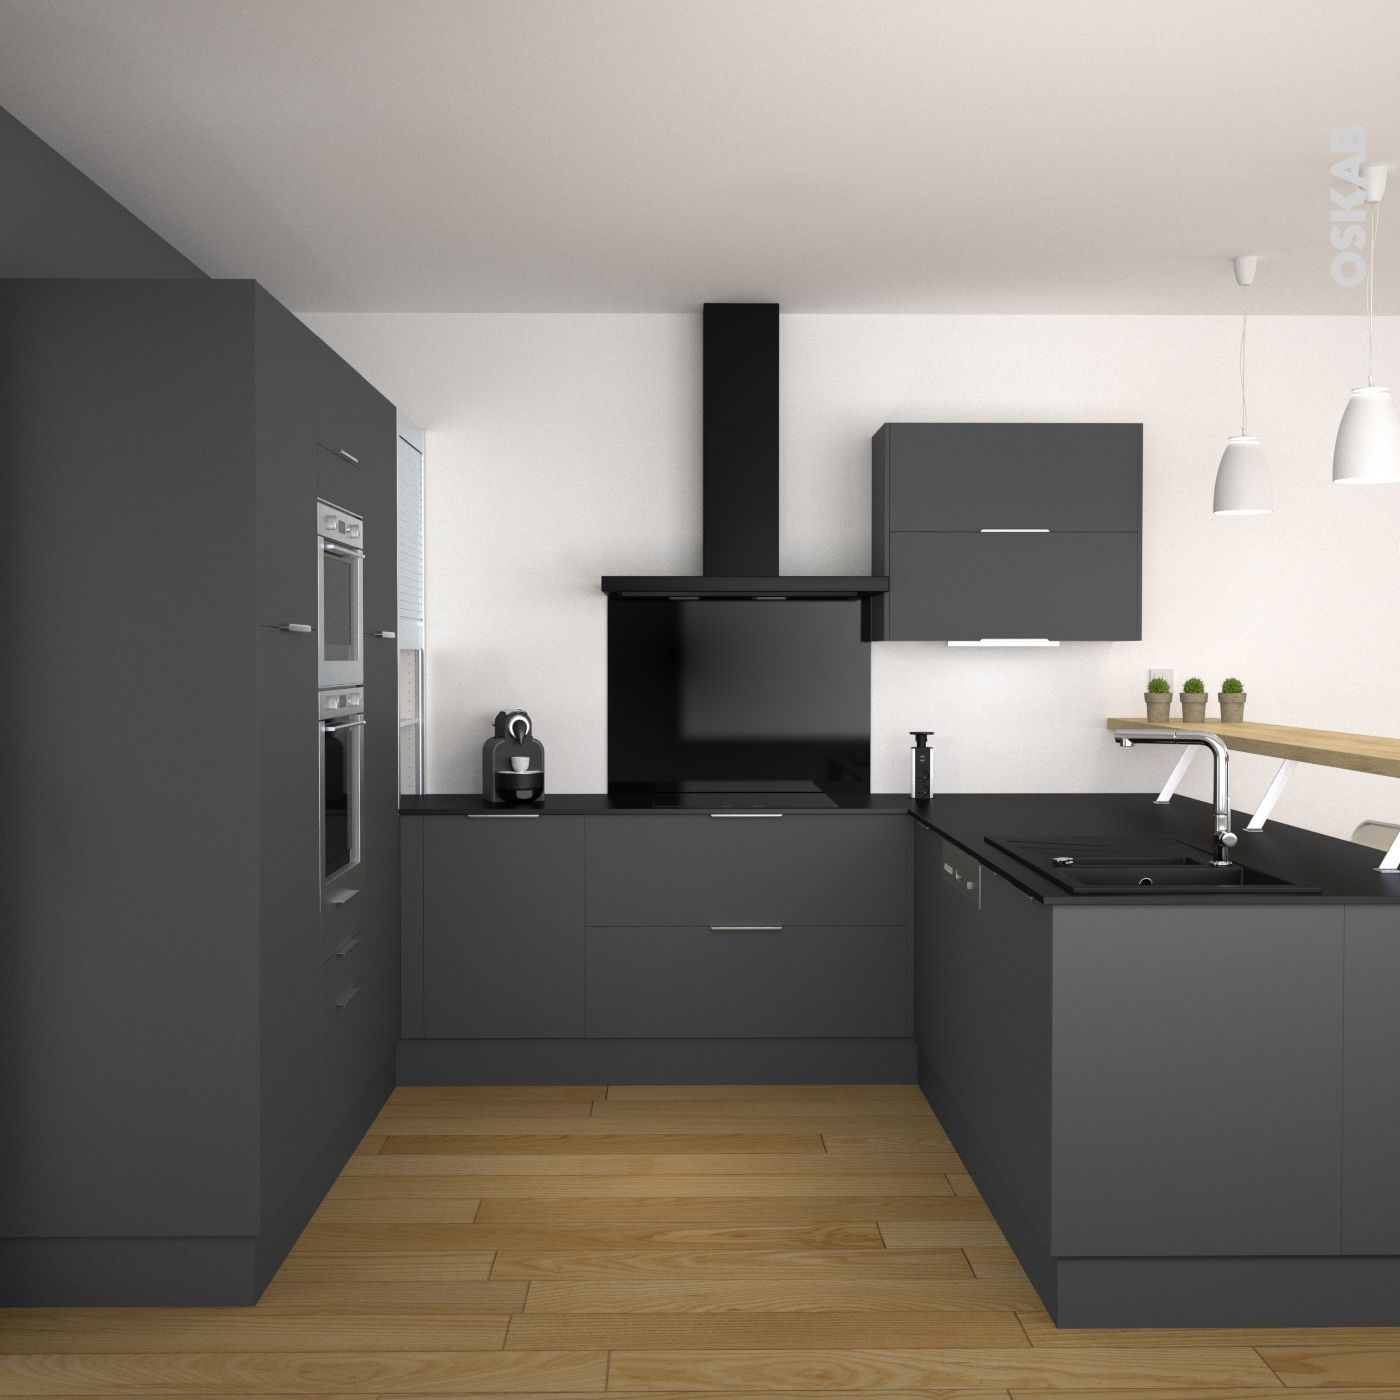 Cuisine grise porte effet soft touch GINKO Gris mat  Graphite Doors and Kitchens